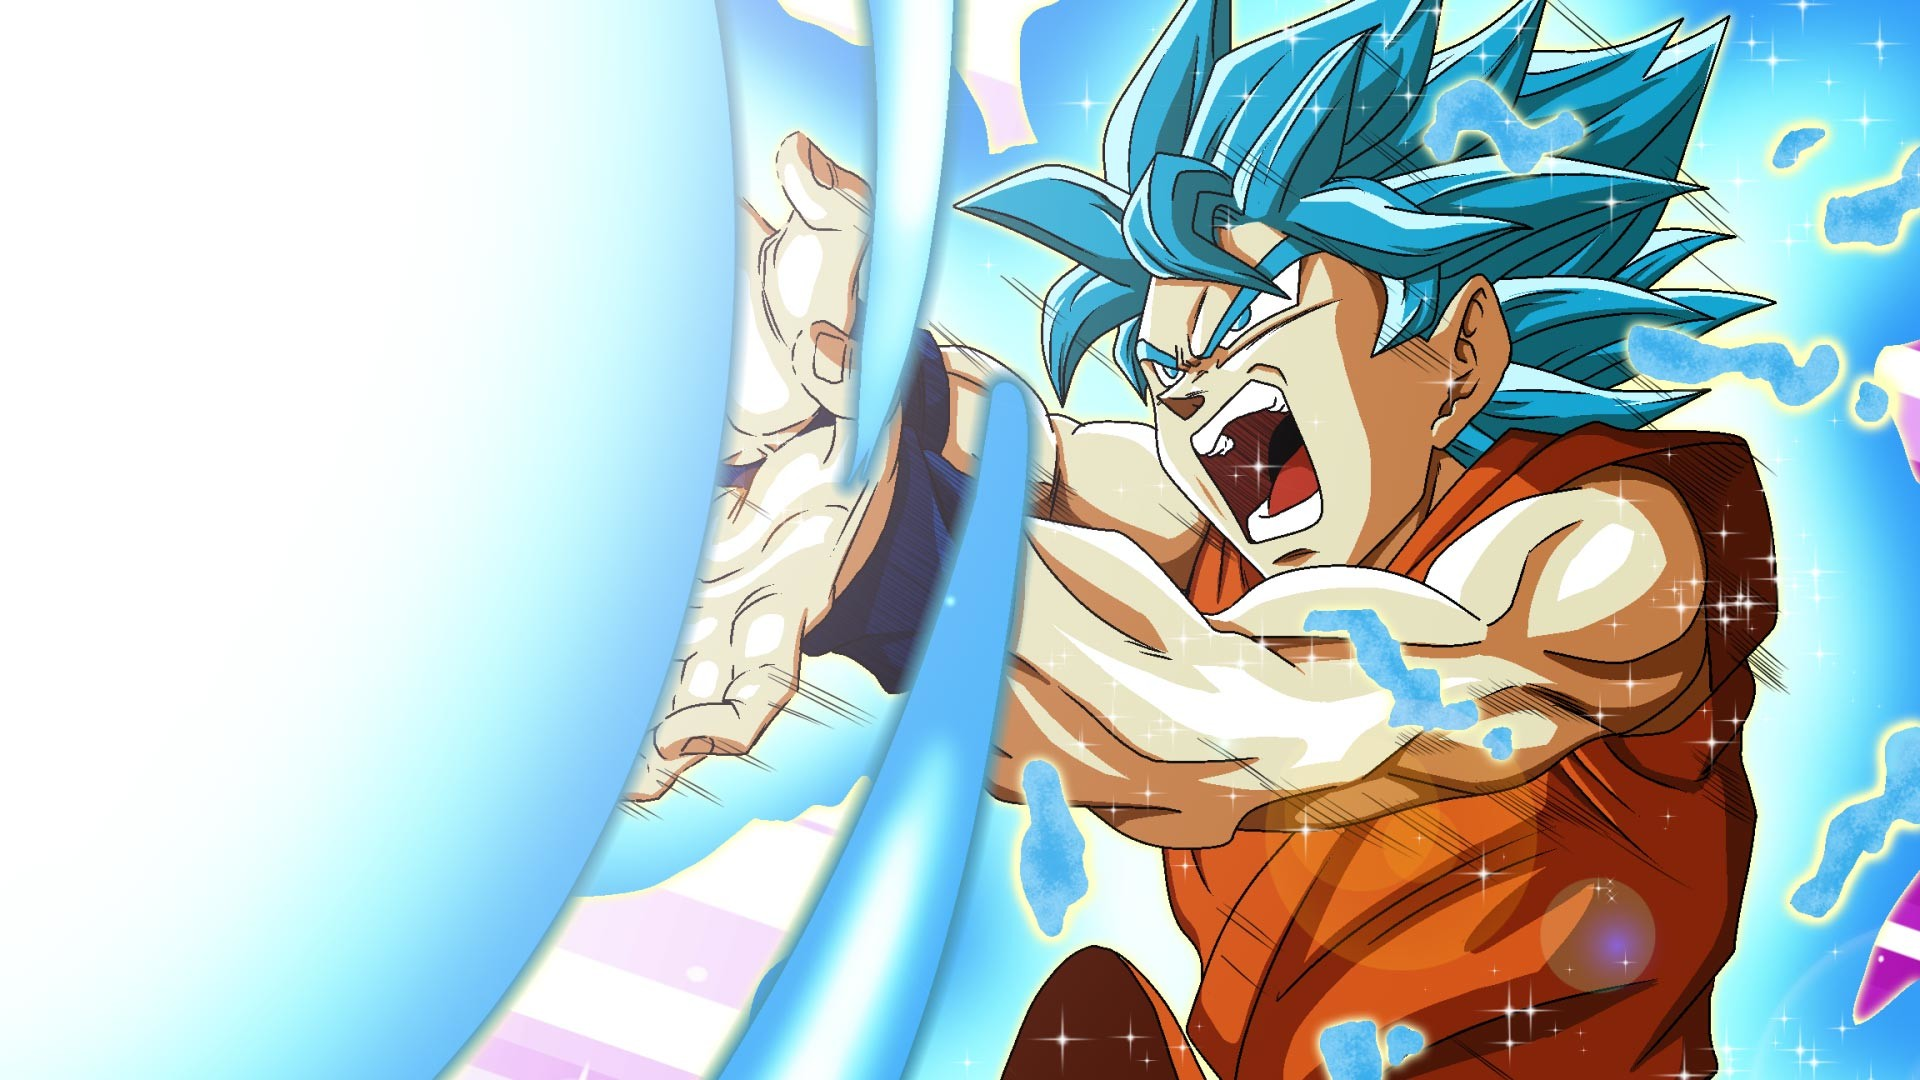 … Saiyan God Super Saiyan and fighting new opponents from other  universes, dimensions and timelines. You'll find various popular characters  like Vegeta, …